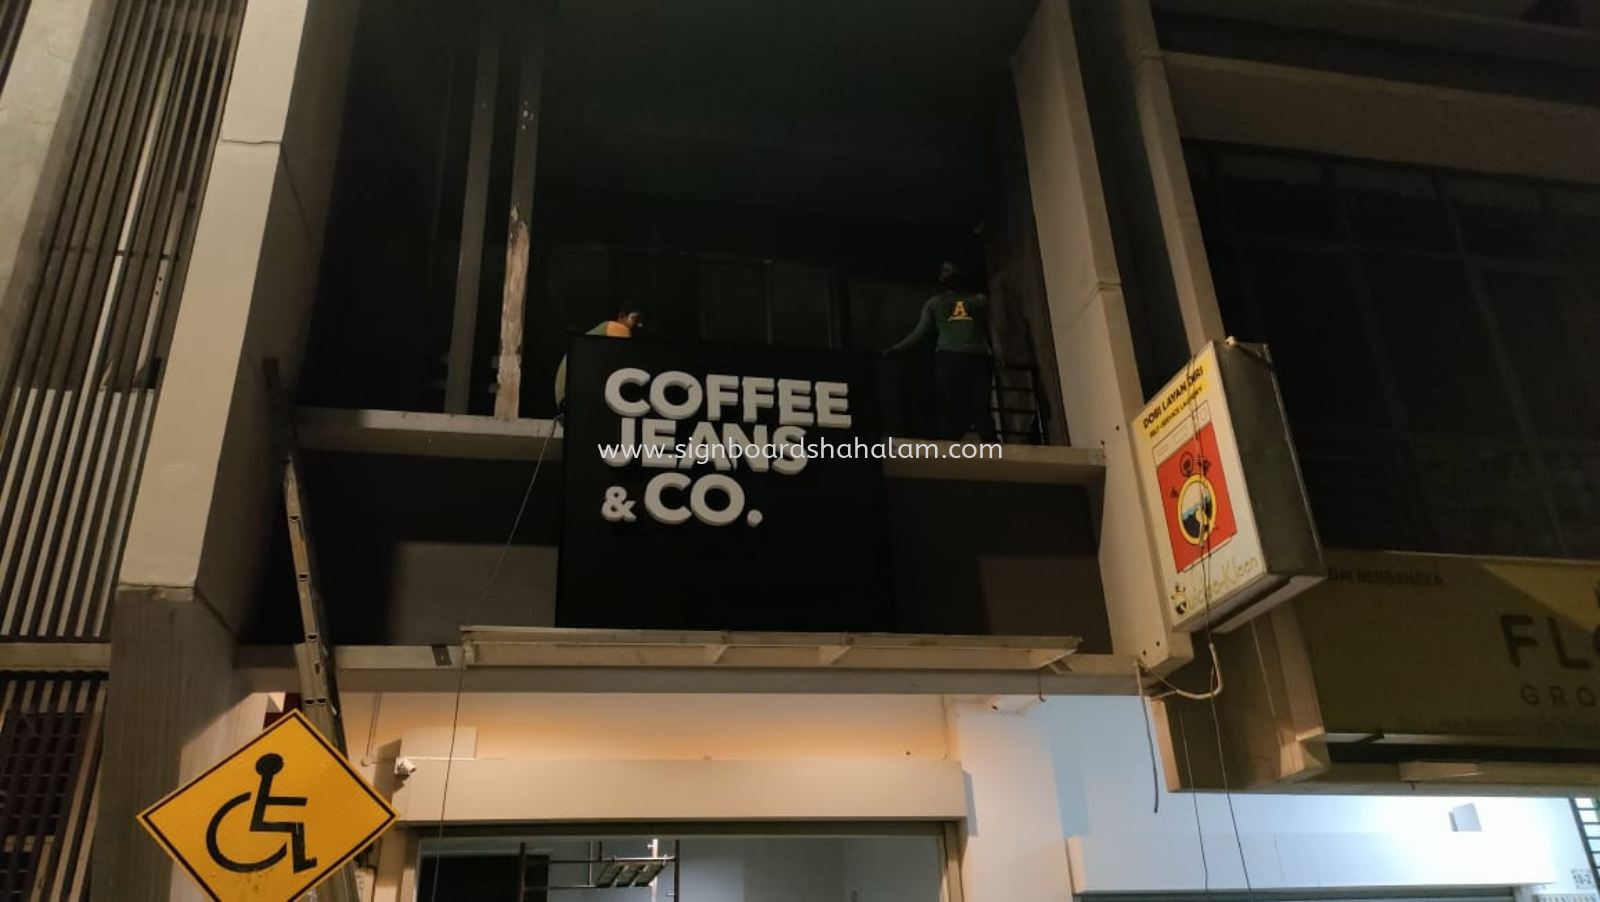 Coffee Jeans Shah Alam - 3D LED Box Up Signboard - Frontlit